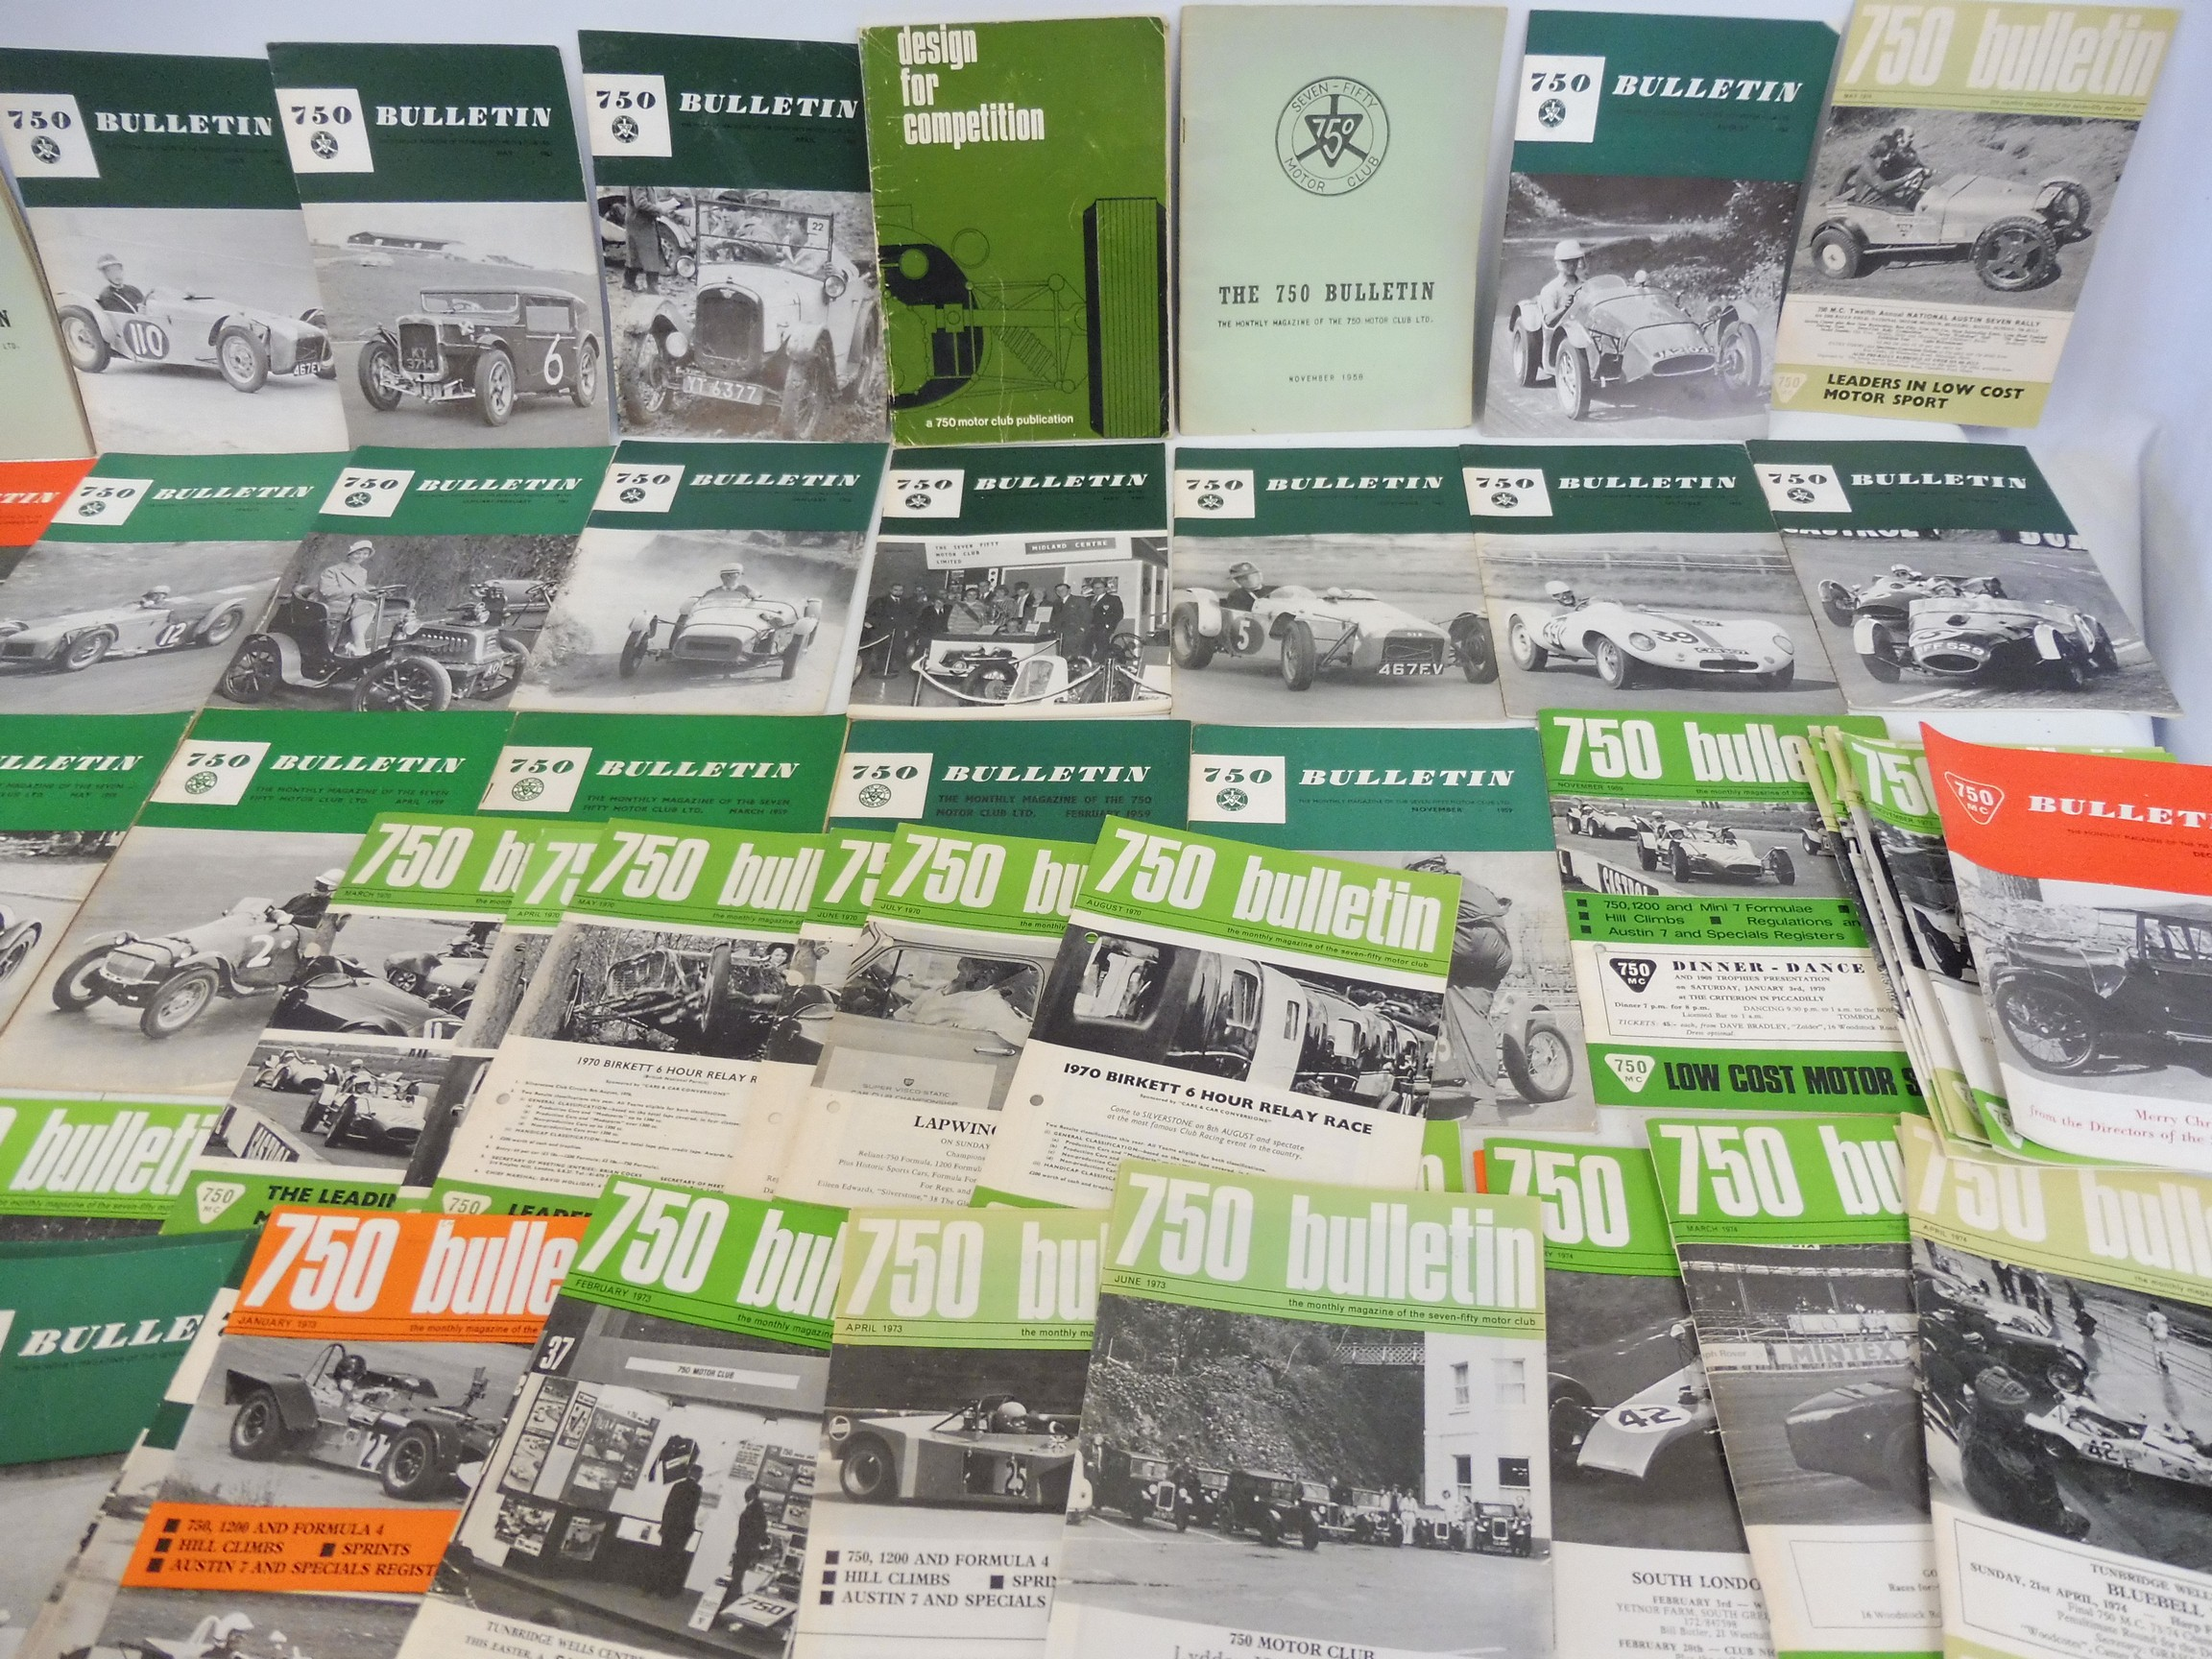 A small collection of 750 Club bulletins and related ephemera, various issues from 1958 including - Image 3 of 3